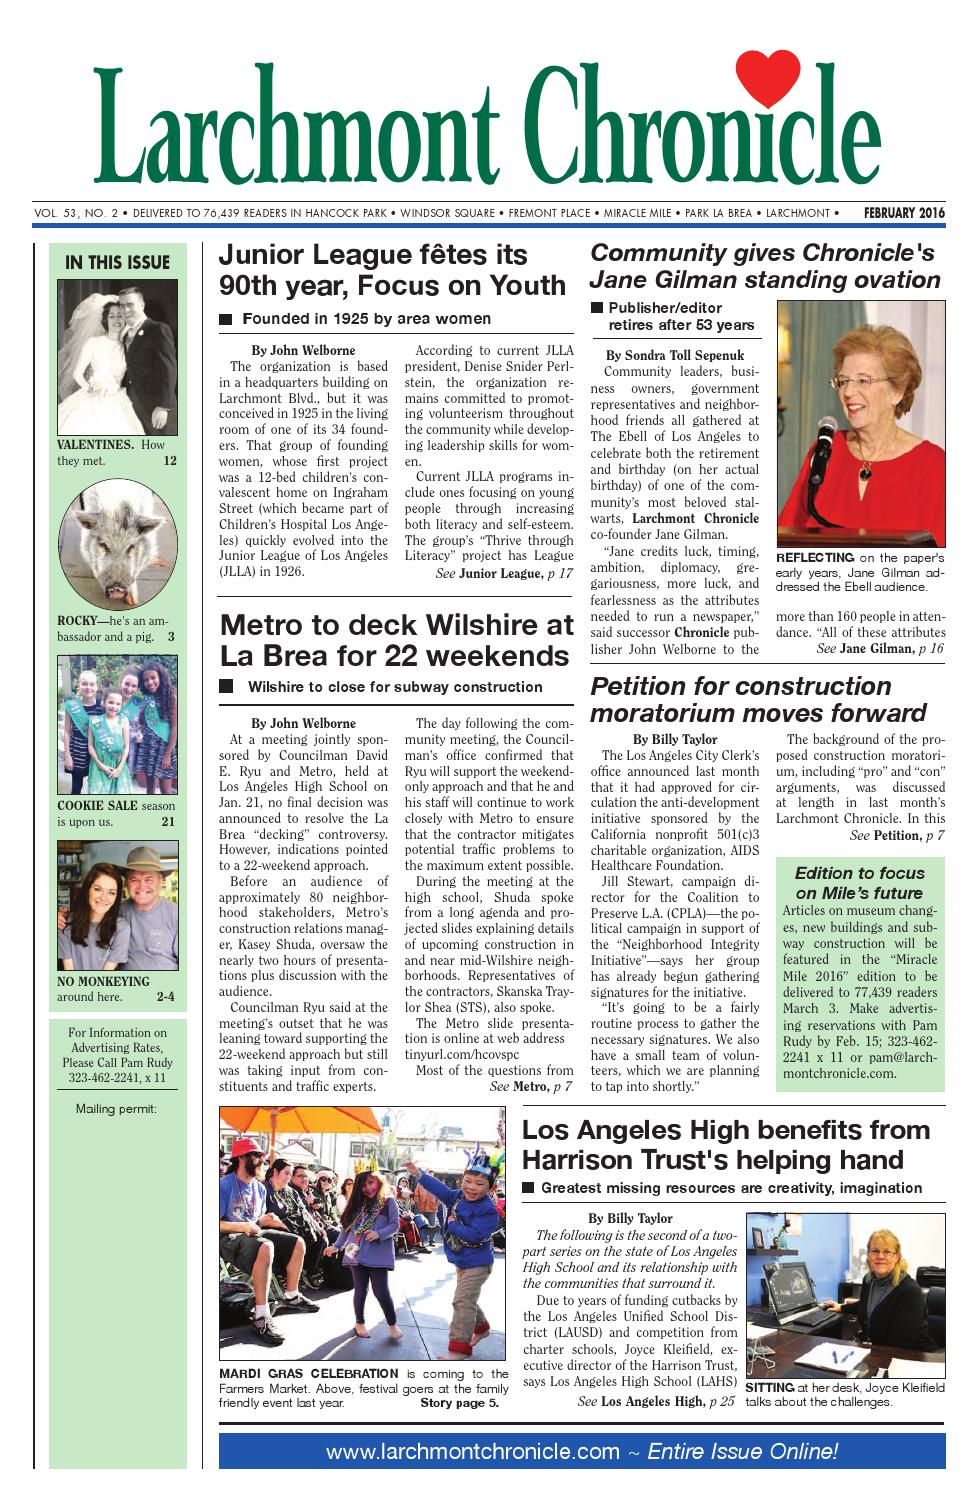 c5c62692d5 Lc issue 02 16 100 by Larchmont Chronicle - issuu